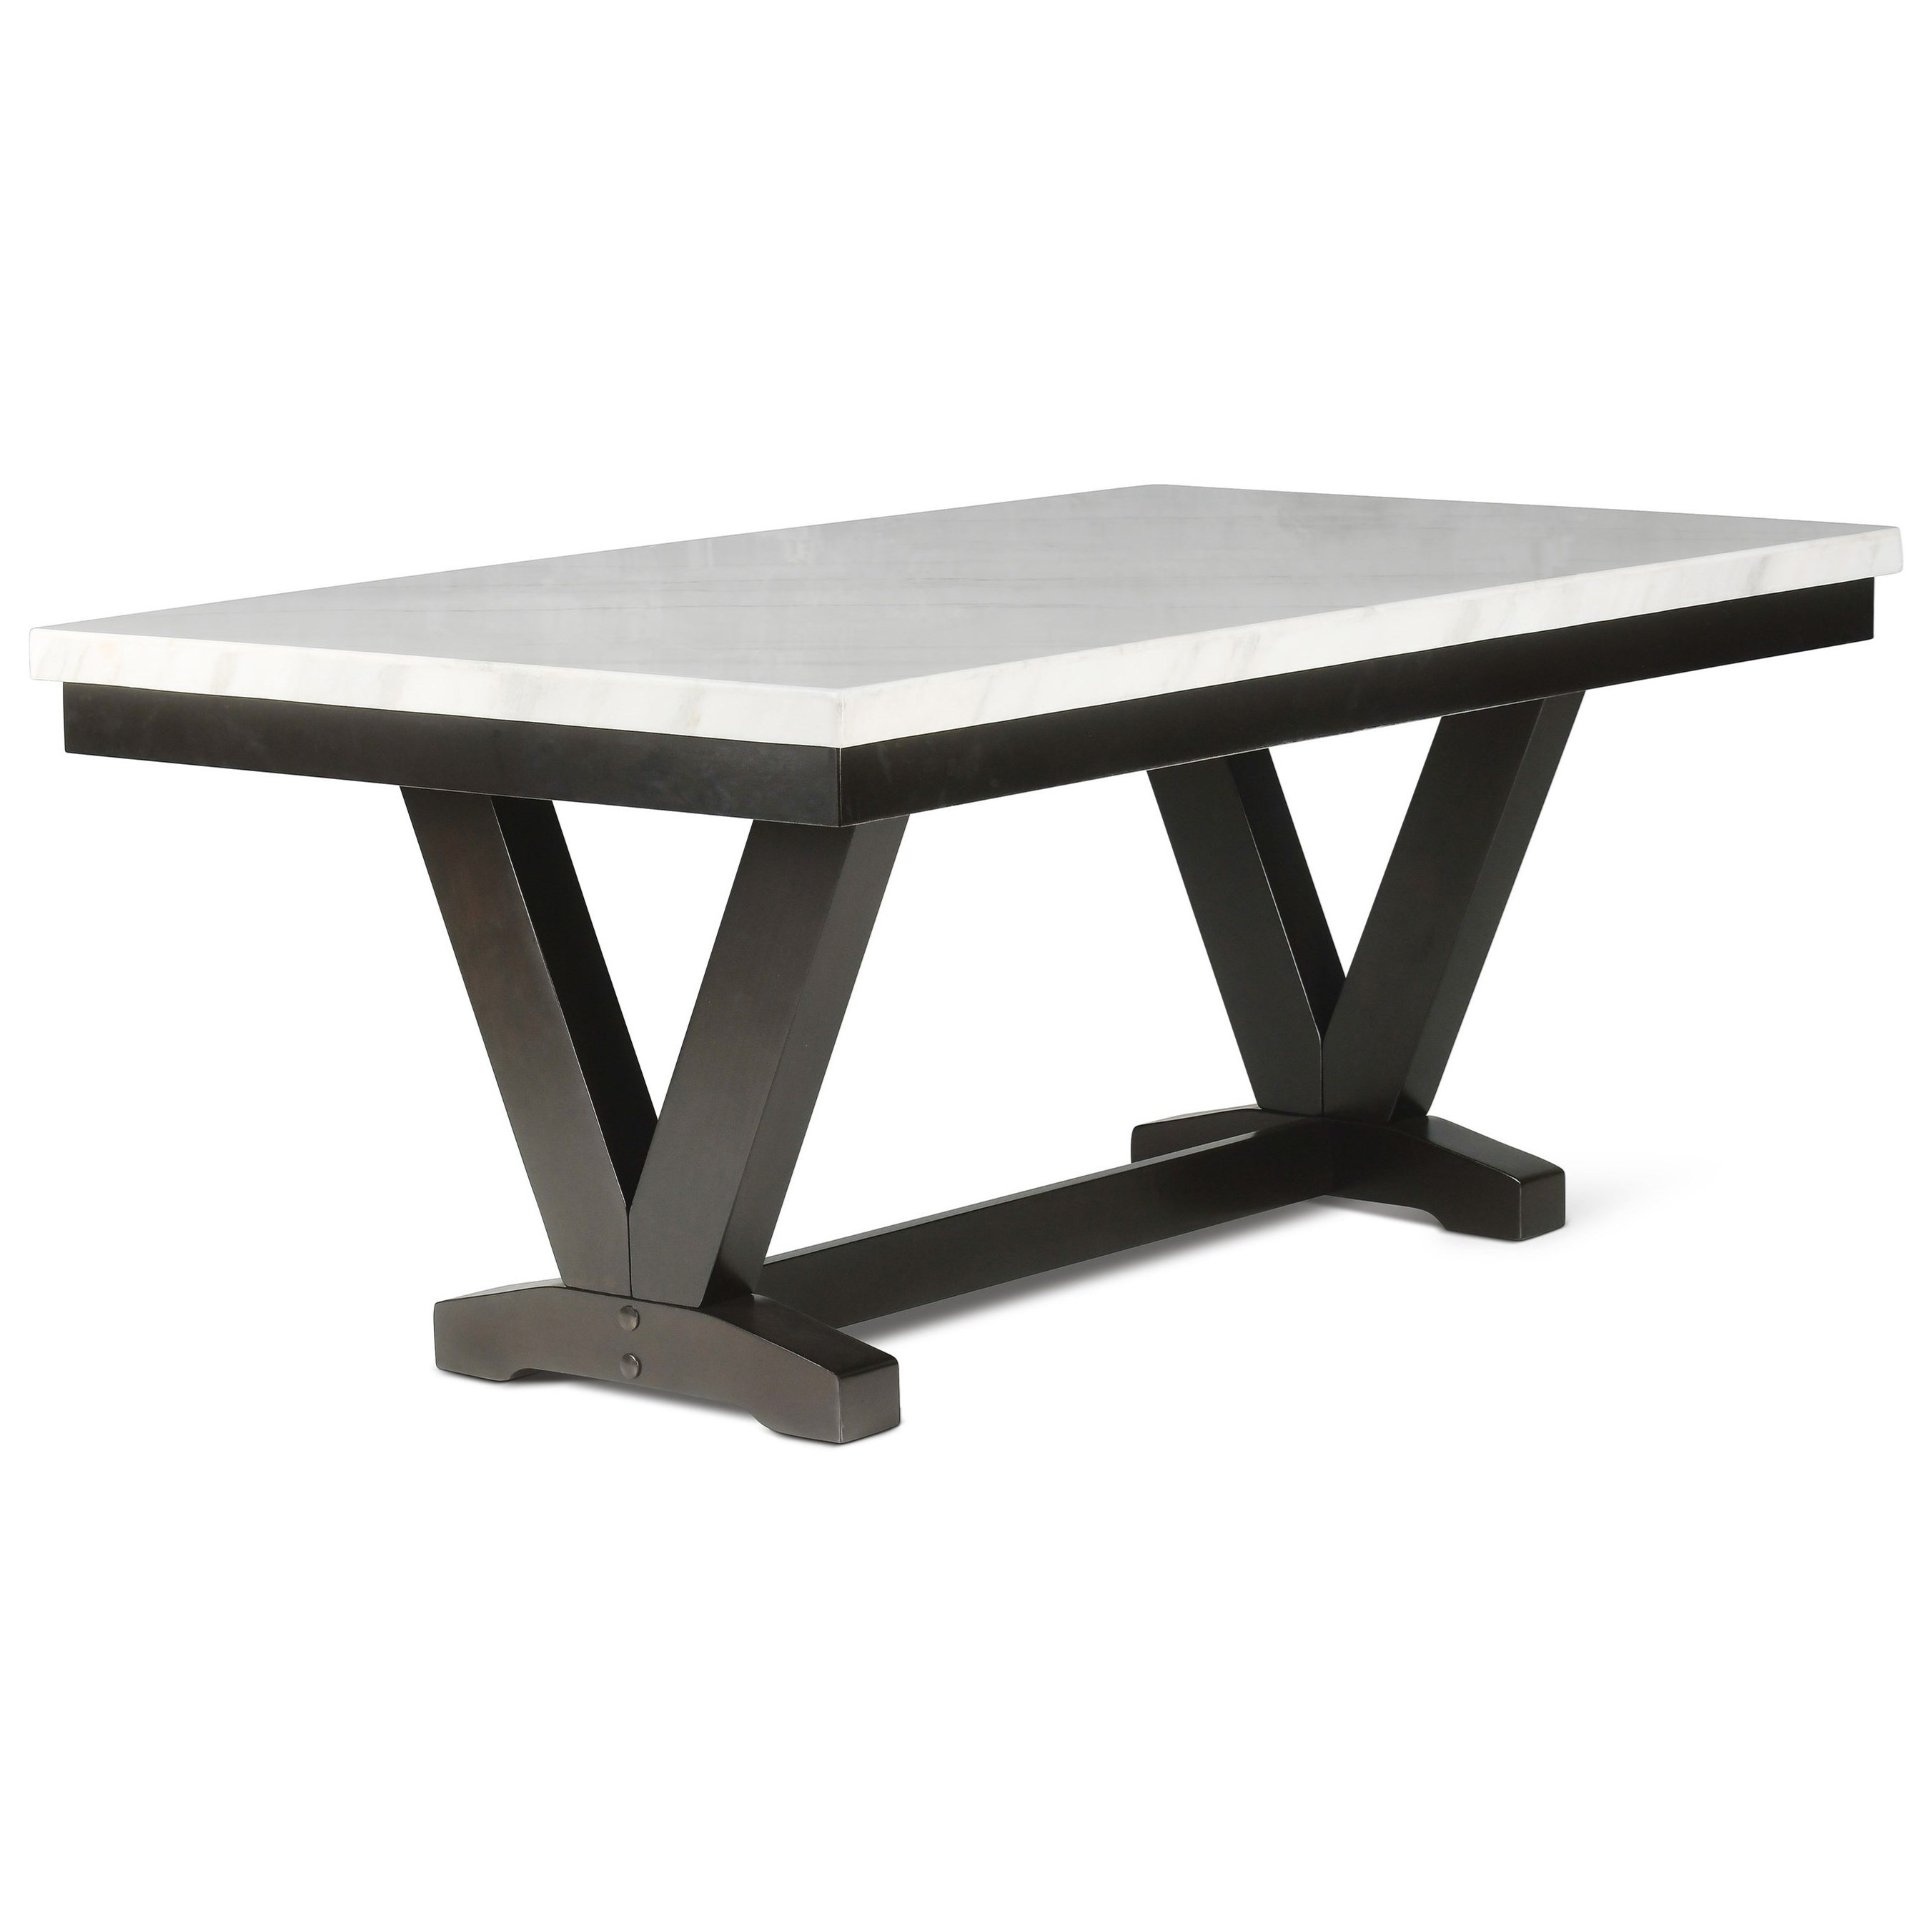 Finley Dining Table by Steve Silver at Walker's Furniture